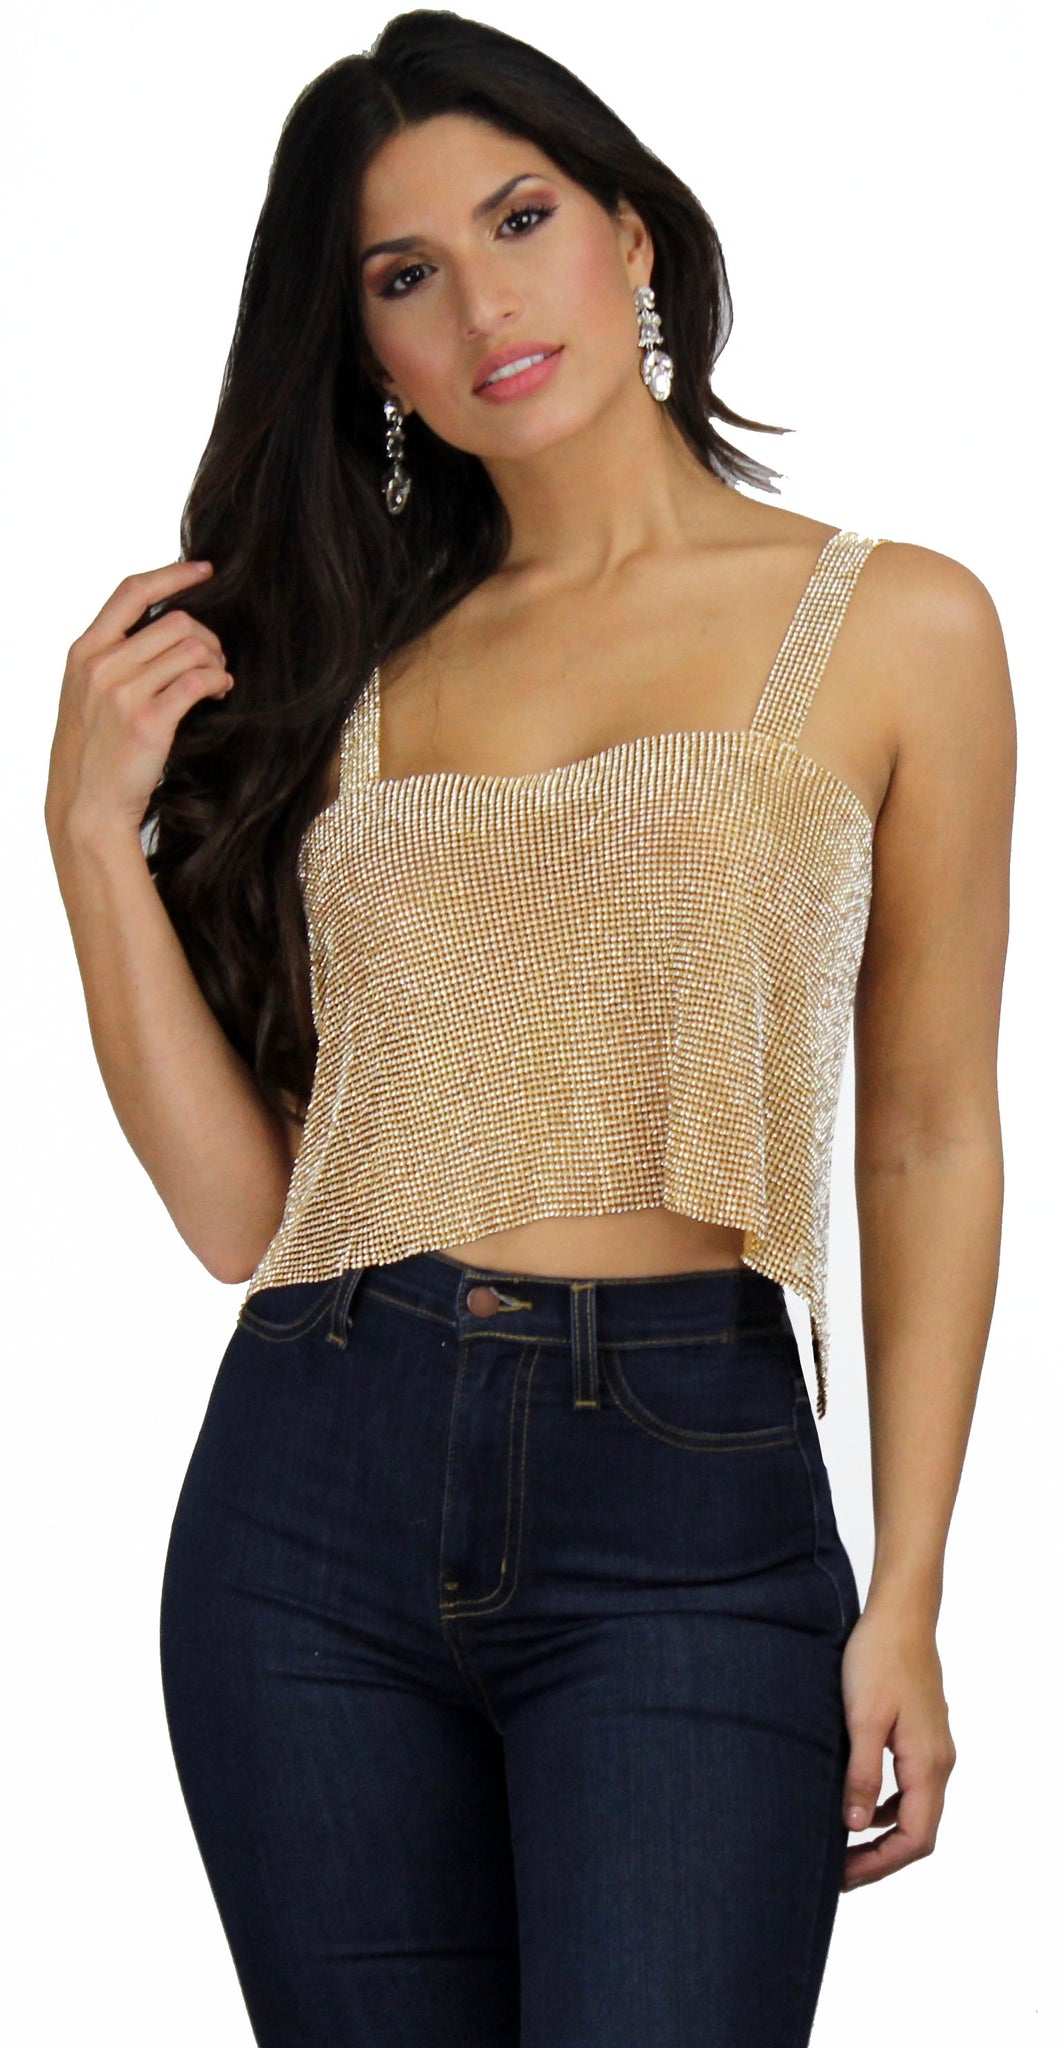 Showstopper Rhinestones Gold Crop Top